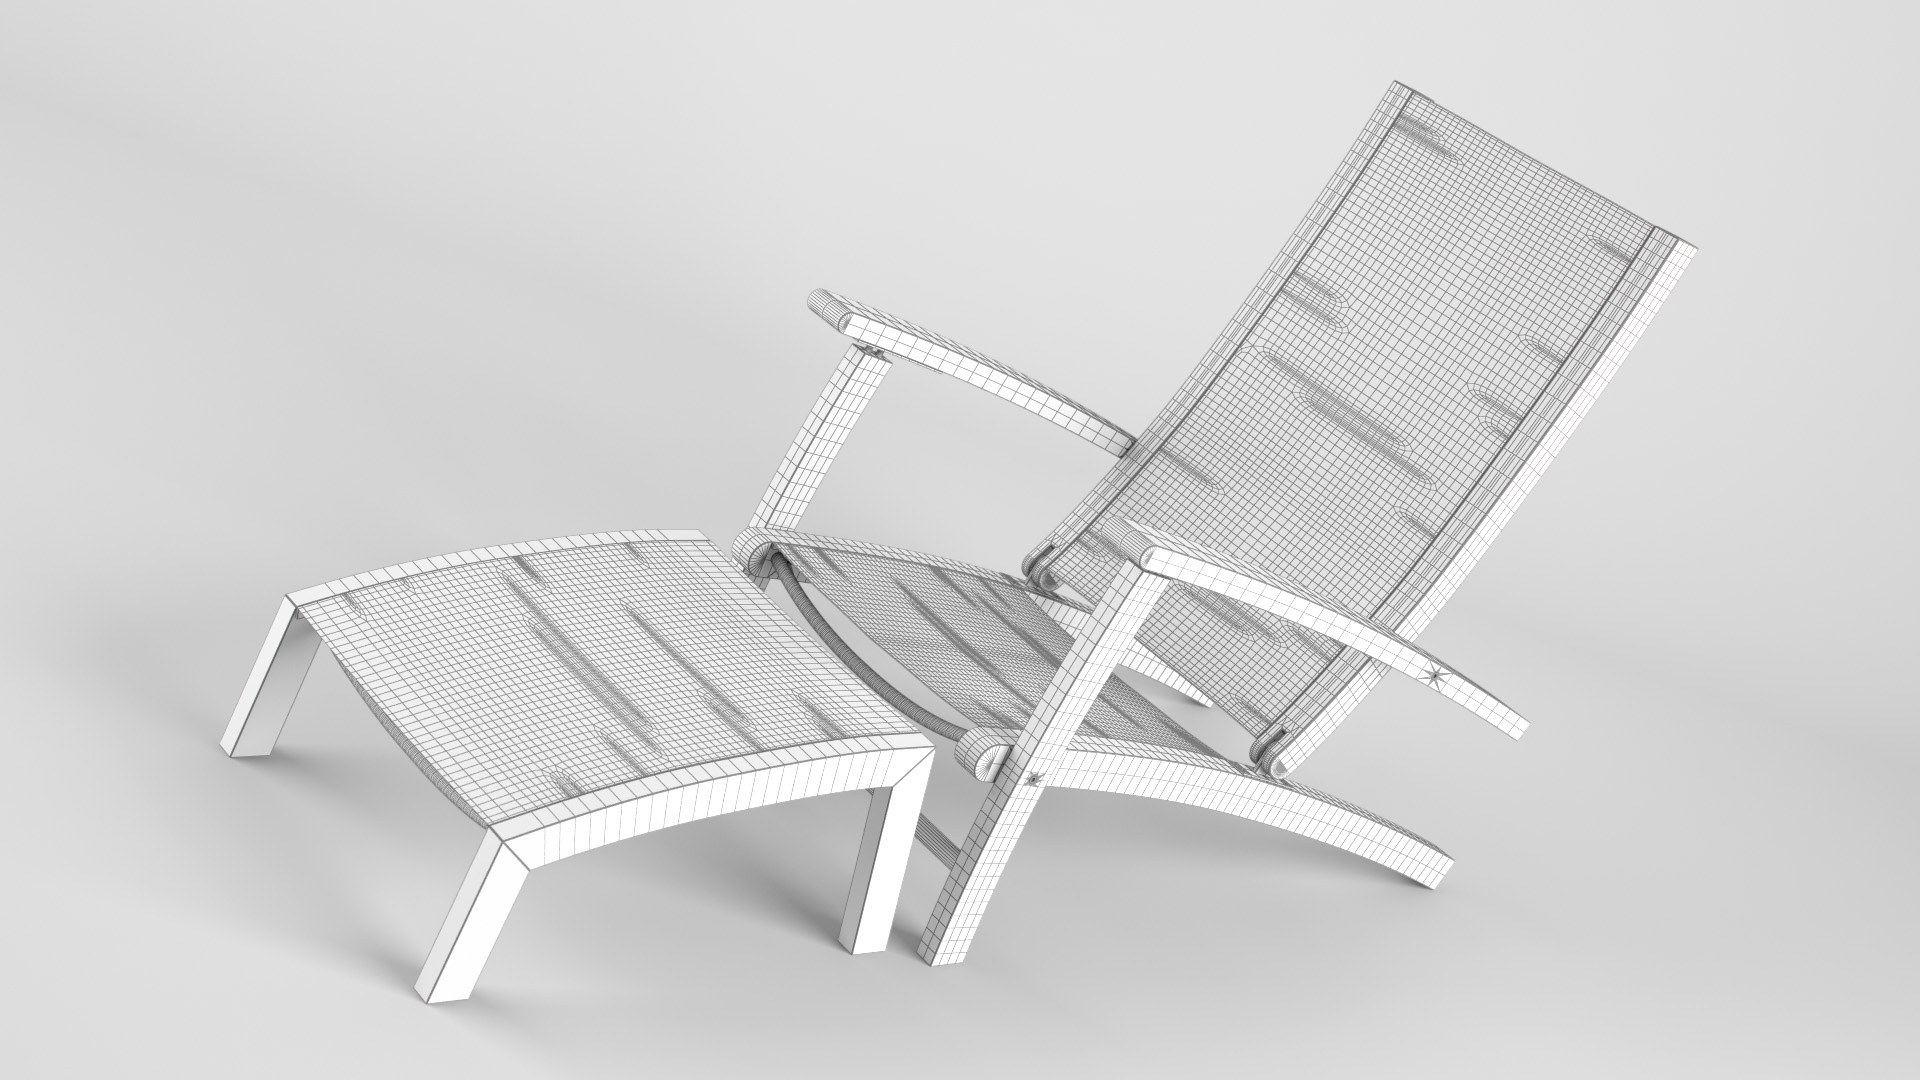 Nomade_EasyChair_WhiteSet_01_wire_0003